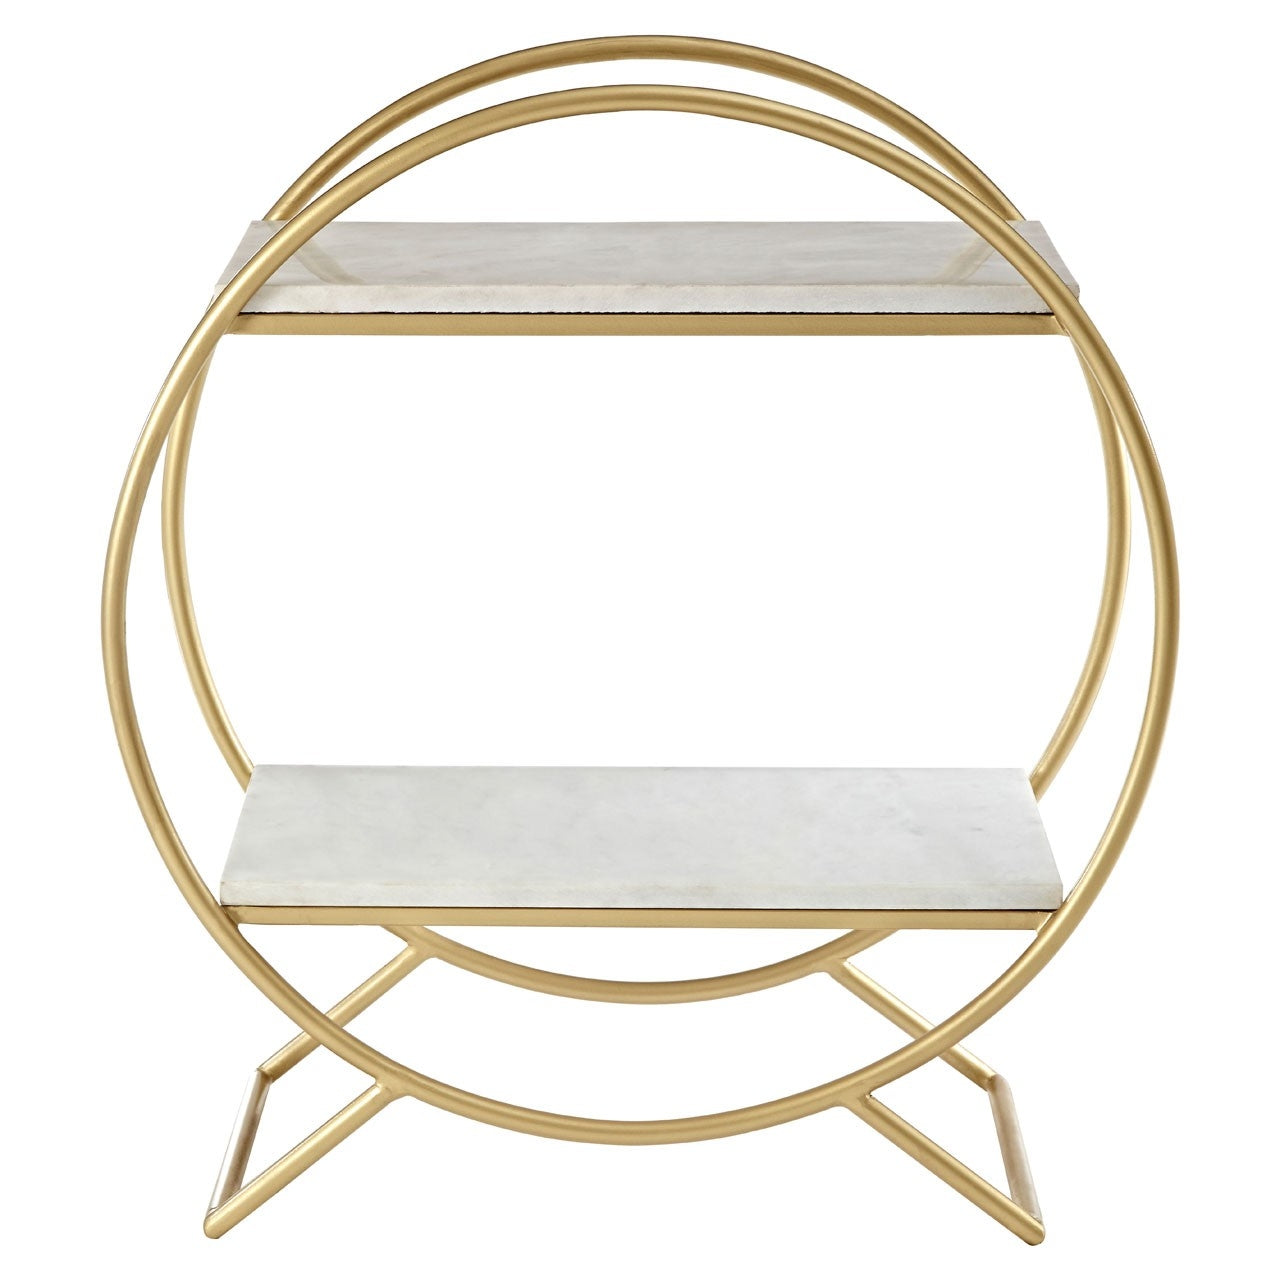 Harmony Round Shelf Unit